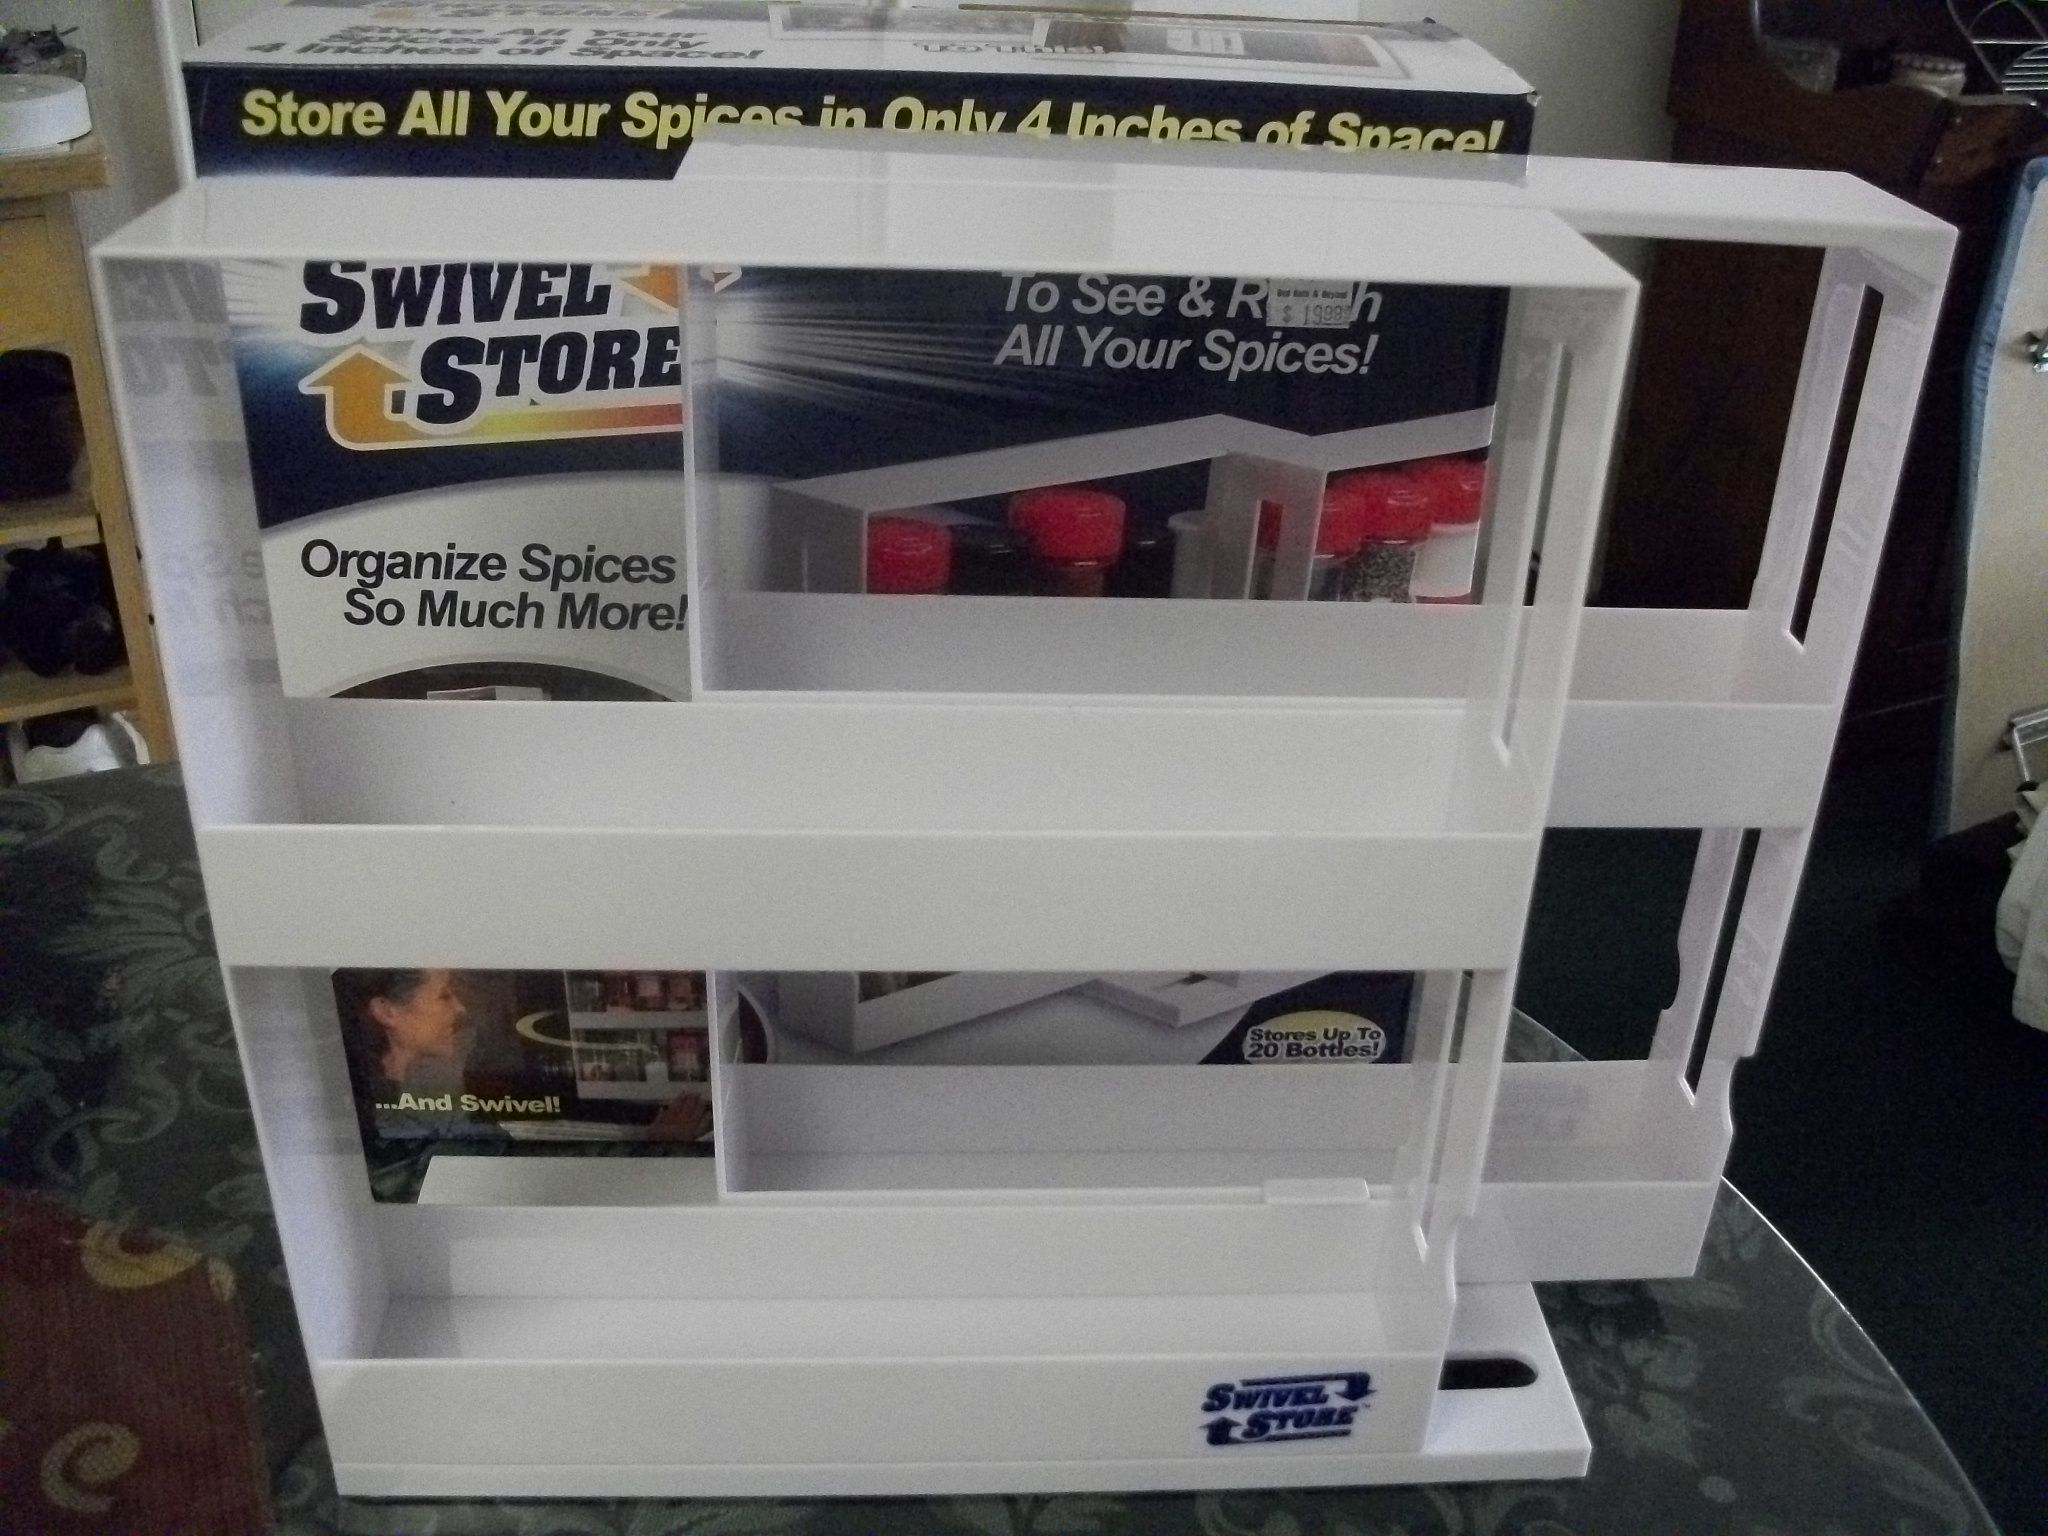 The Swivel Store helps you get organized and at the same time helps you increase cabinet space.